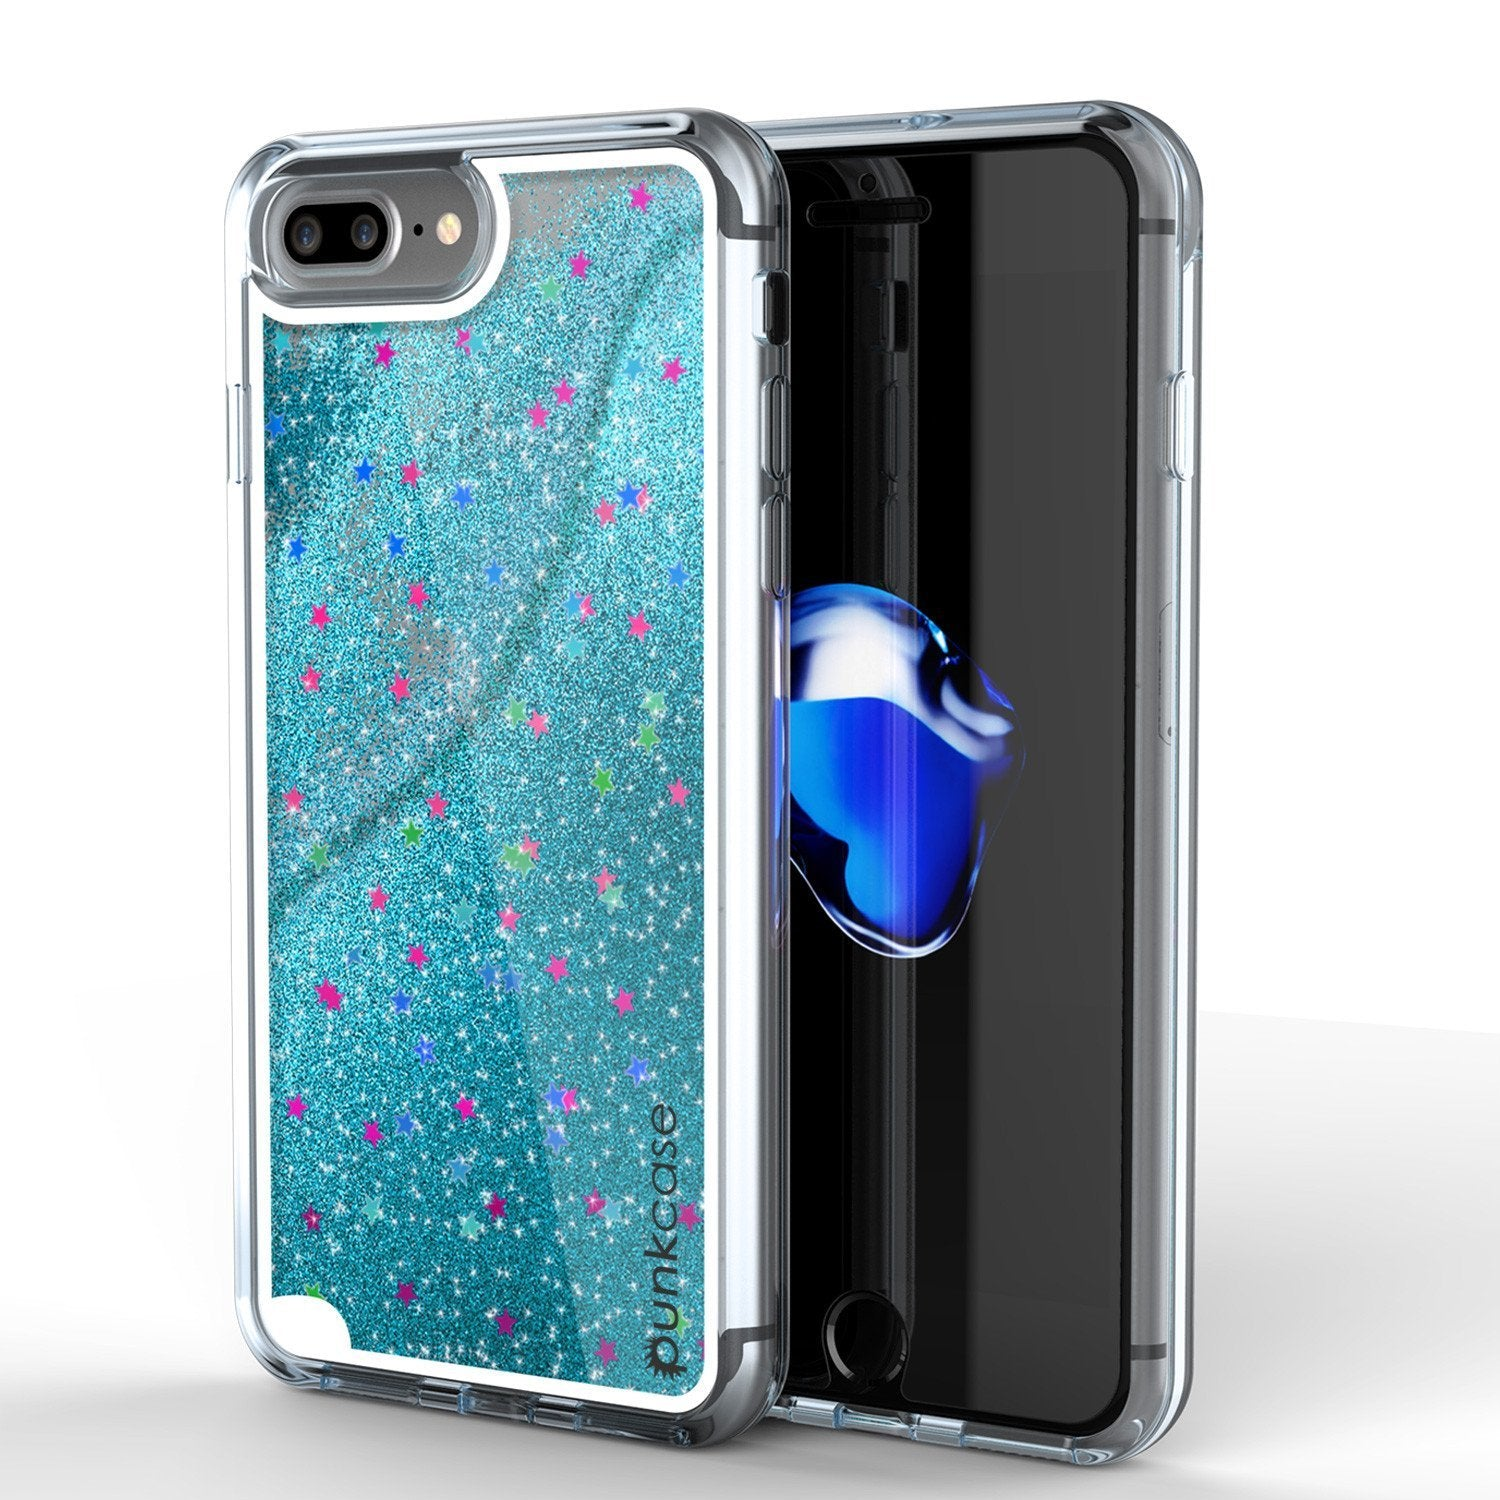 iPhone 8+ Plus Case, PunkCase Liquid Teal Floating Glitter Cover Series